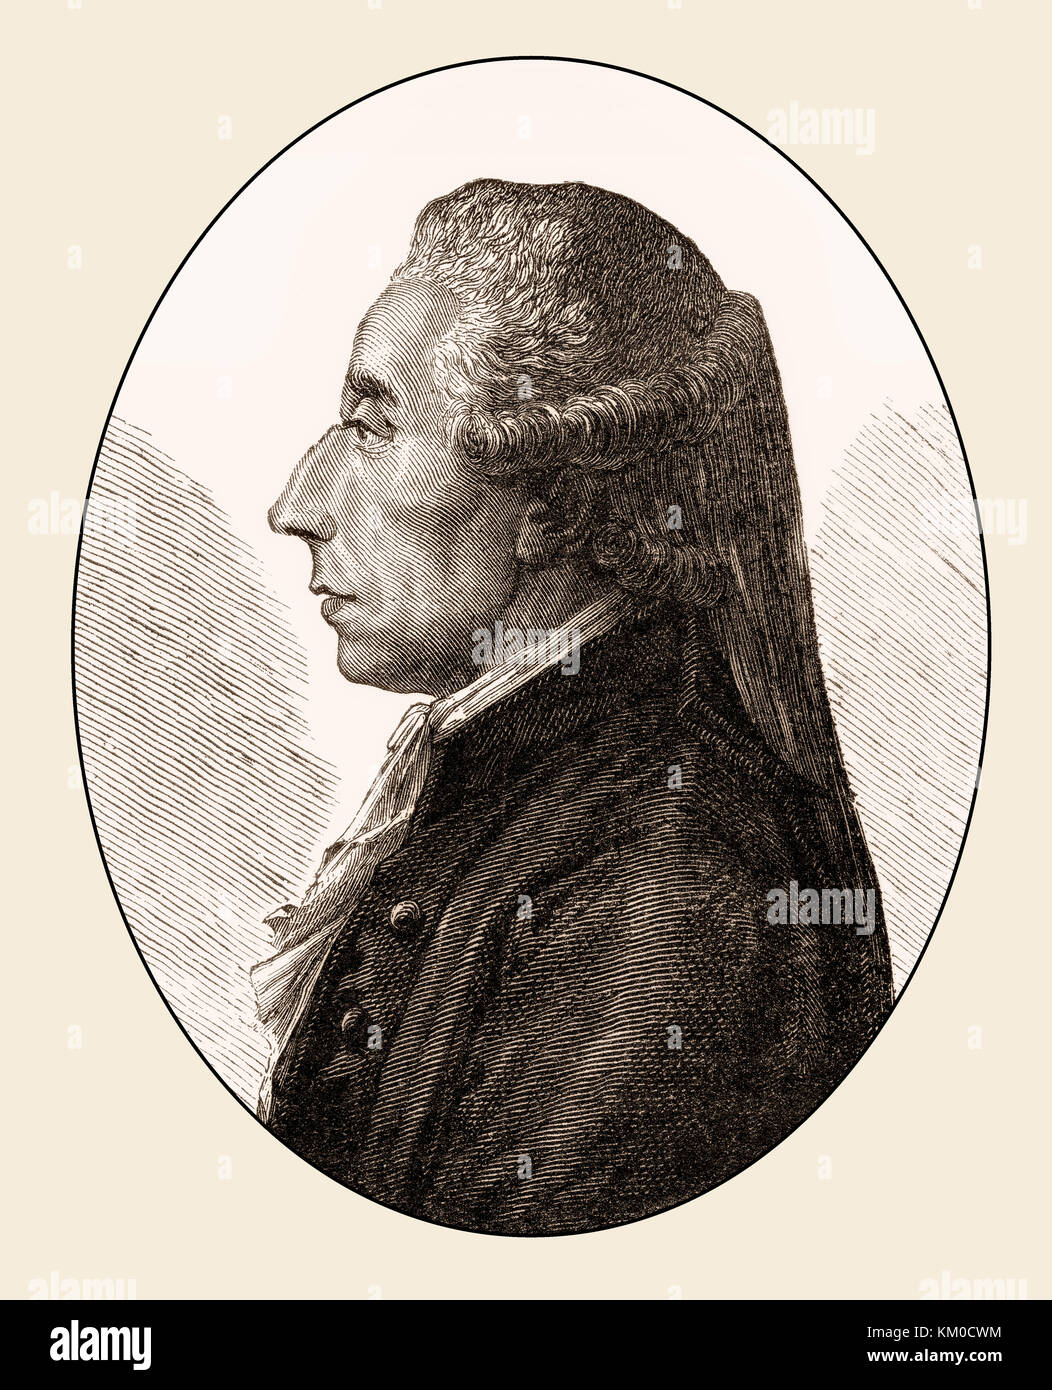 Jean Sylvain Bailly, 1736 – 1793, a French astronomer, mathematician, political leader of the French Revolution - Stock Image